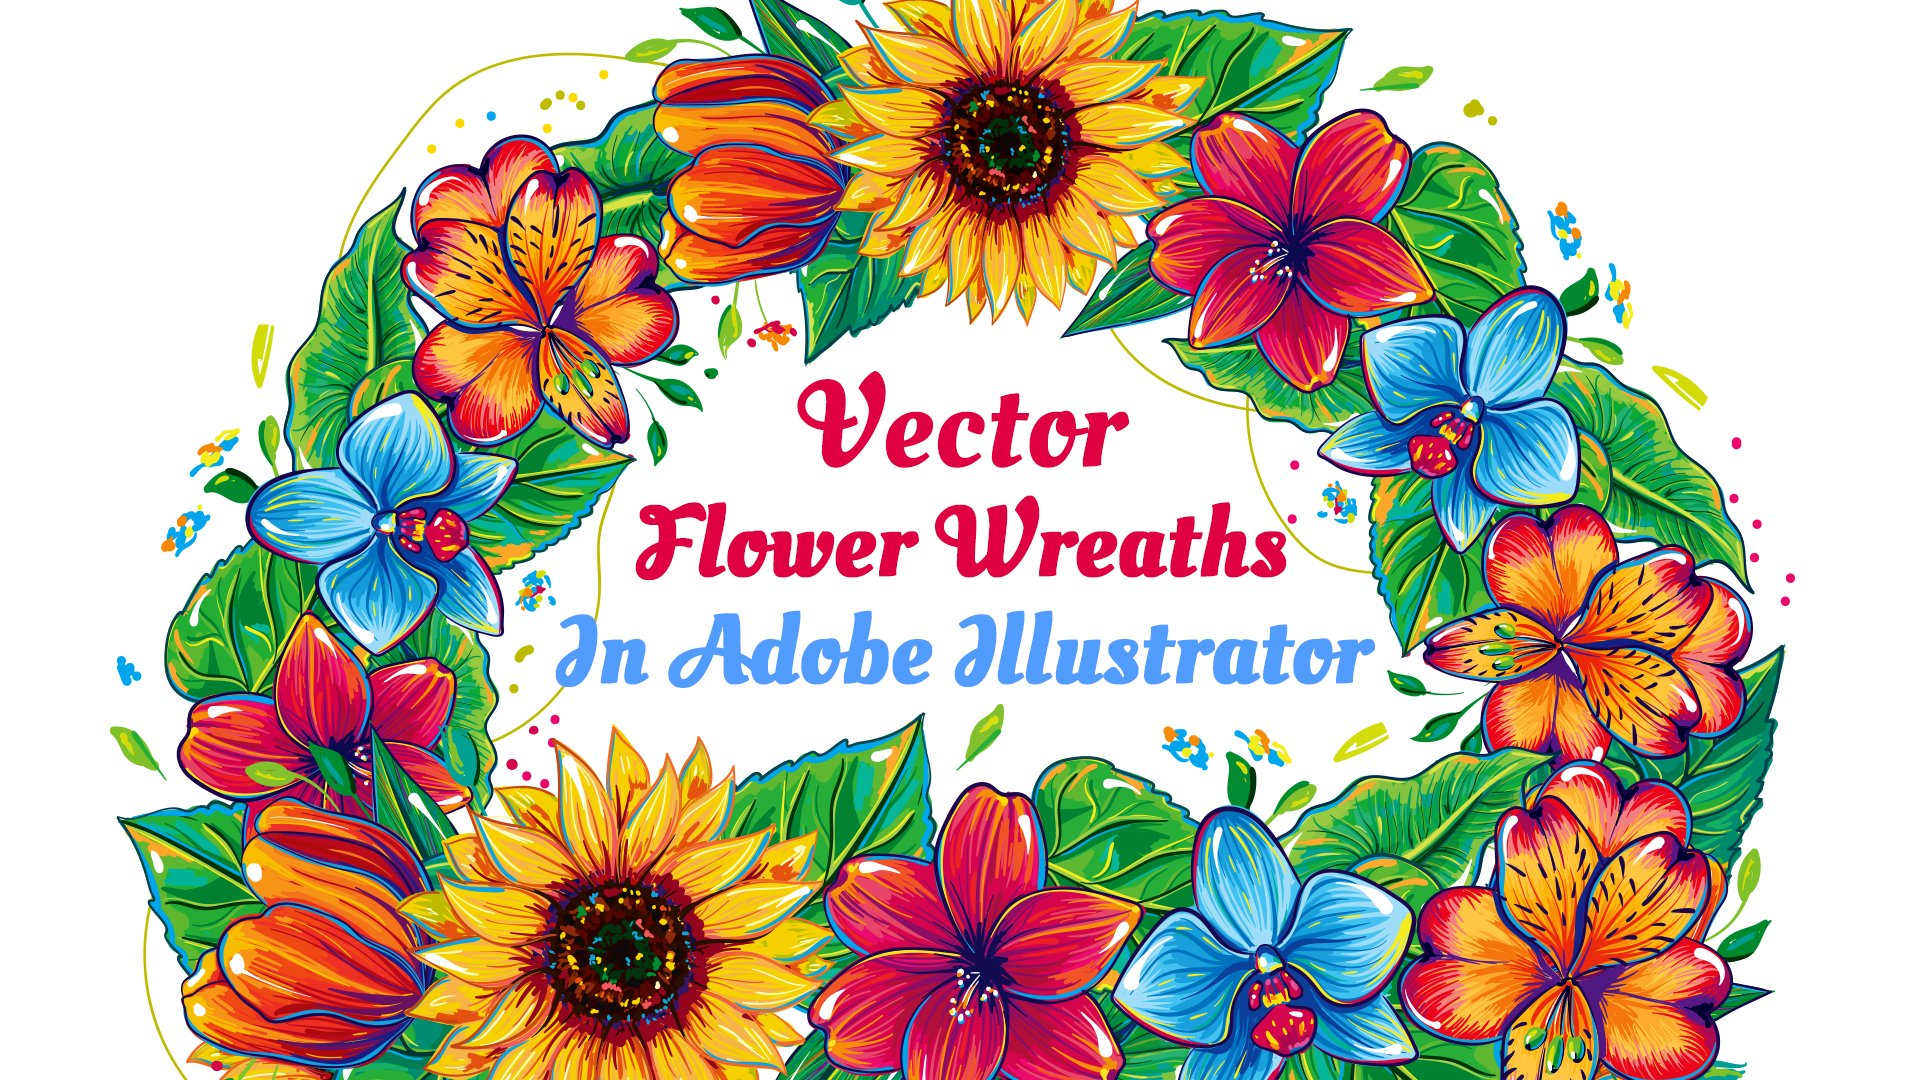 Colorful Vector Flowers and Wreaths in Adobe Illustrator - an Easy